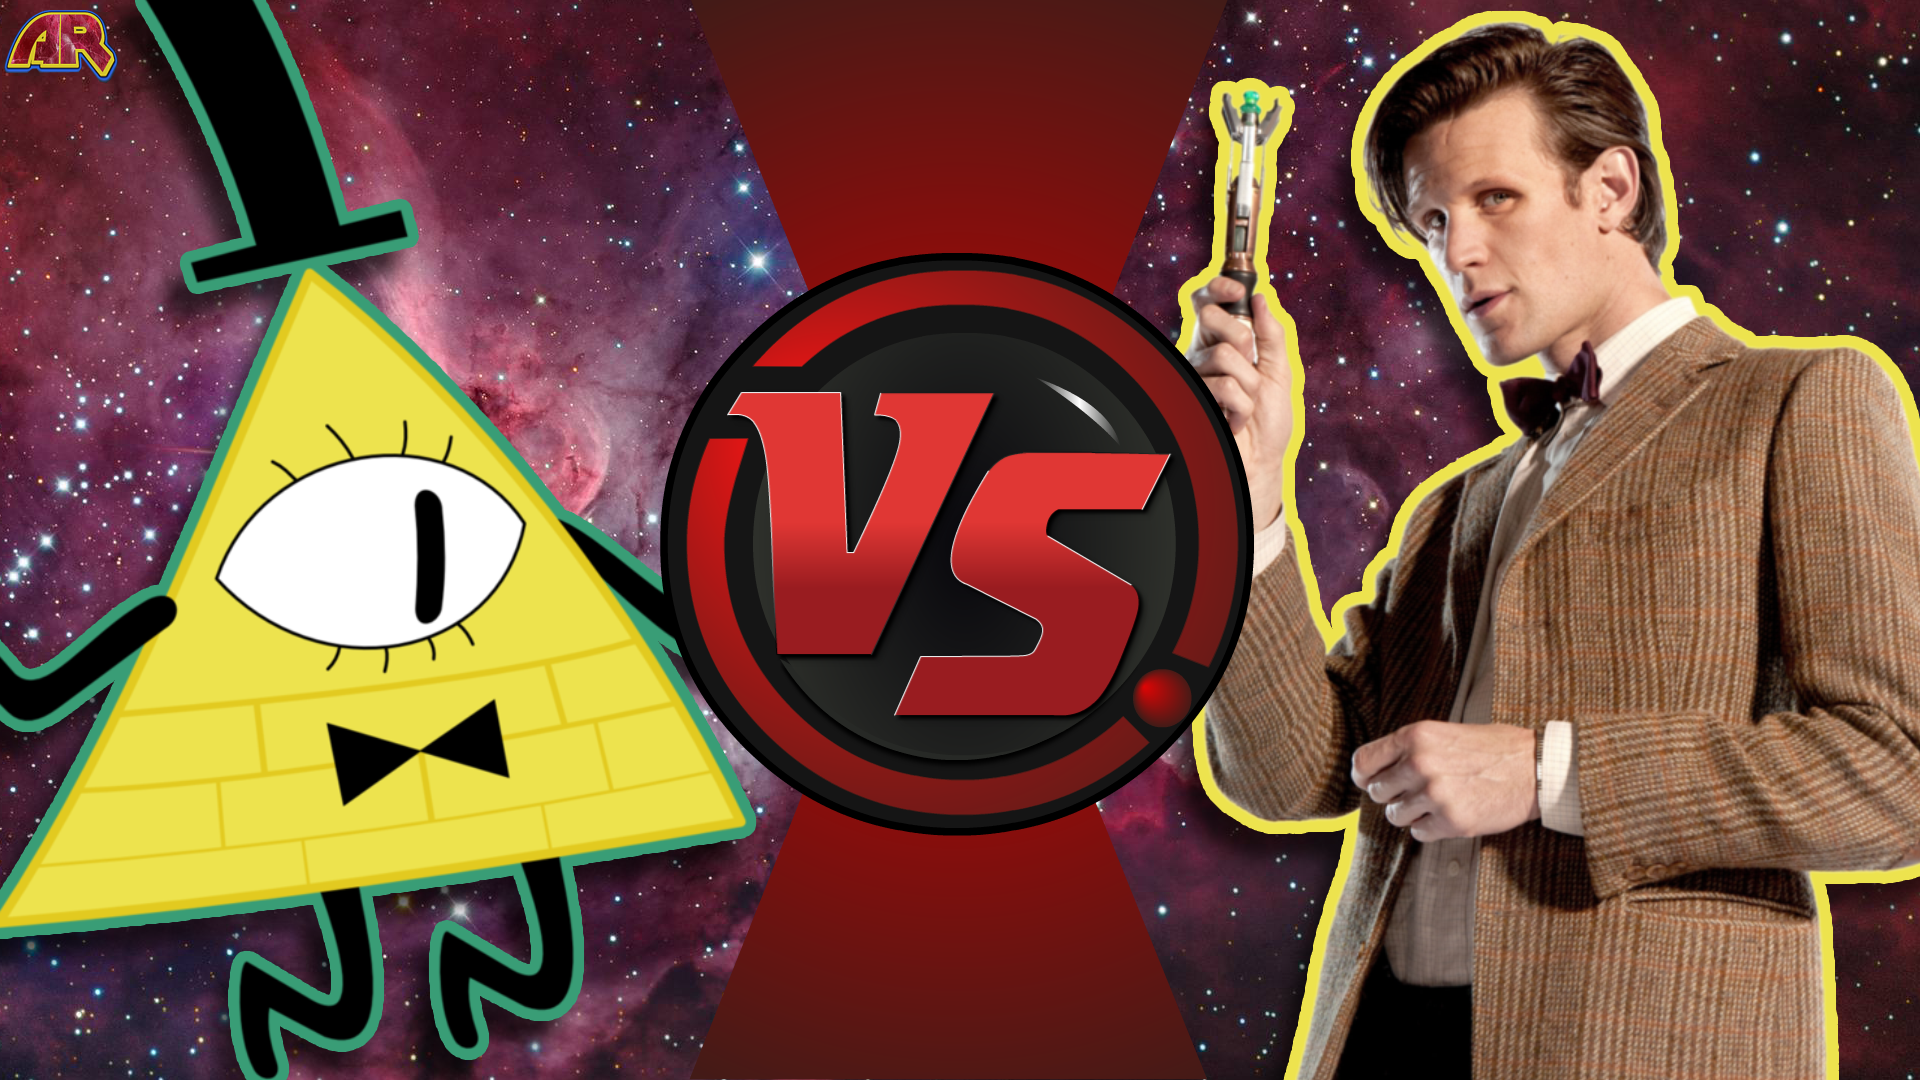 CFC|Bill Cipher vs. The Doctor by Vex2001